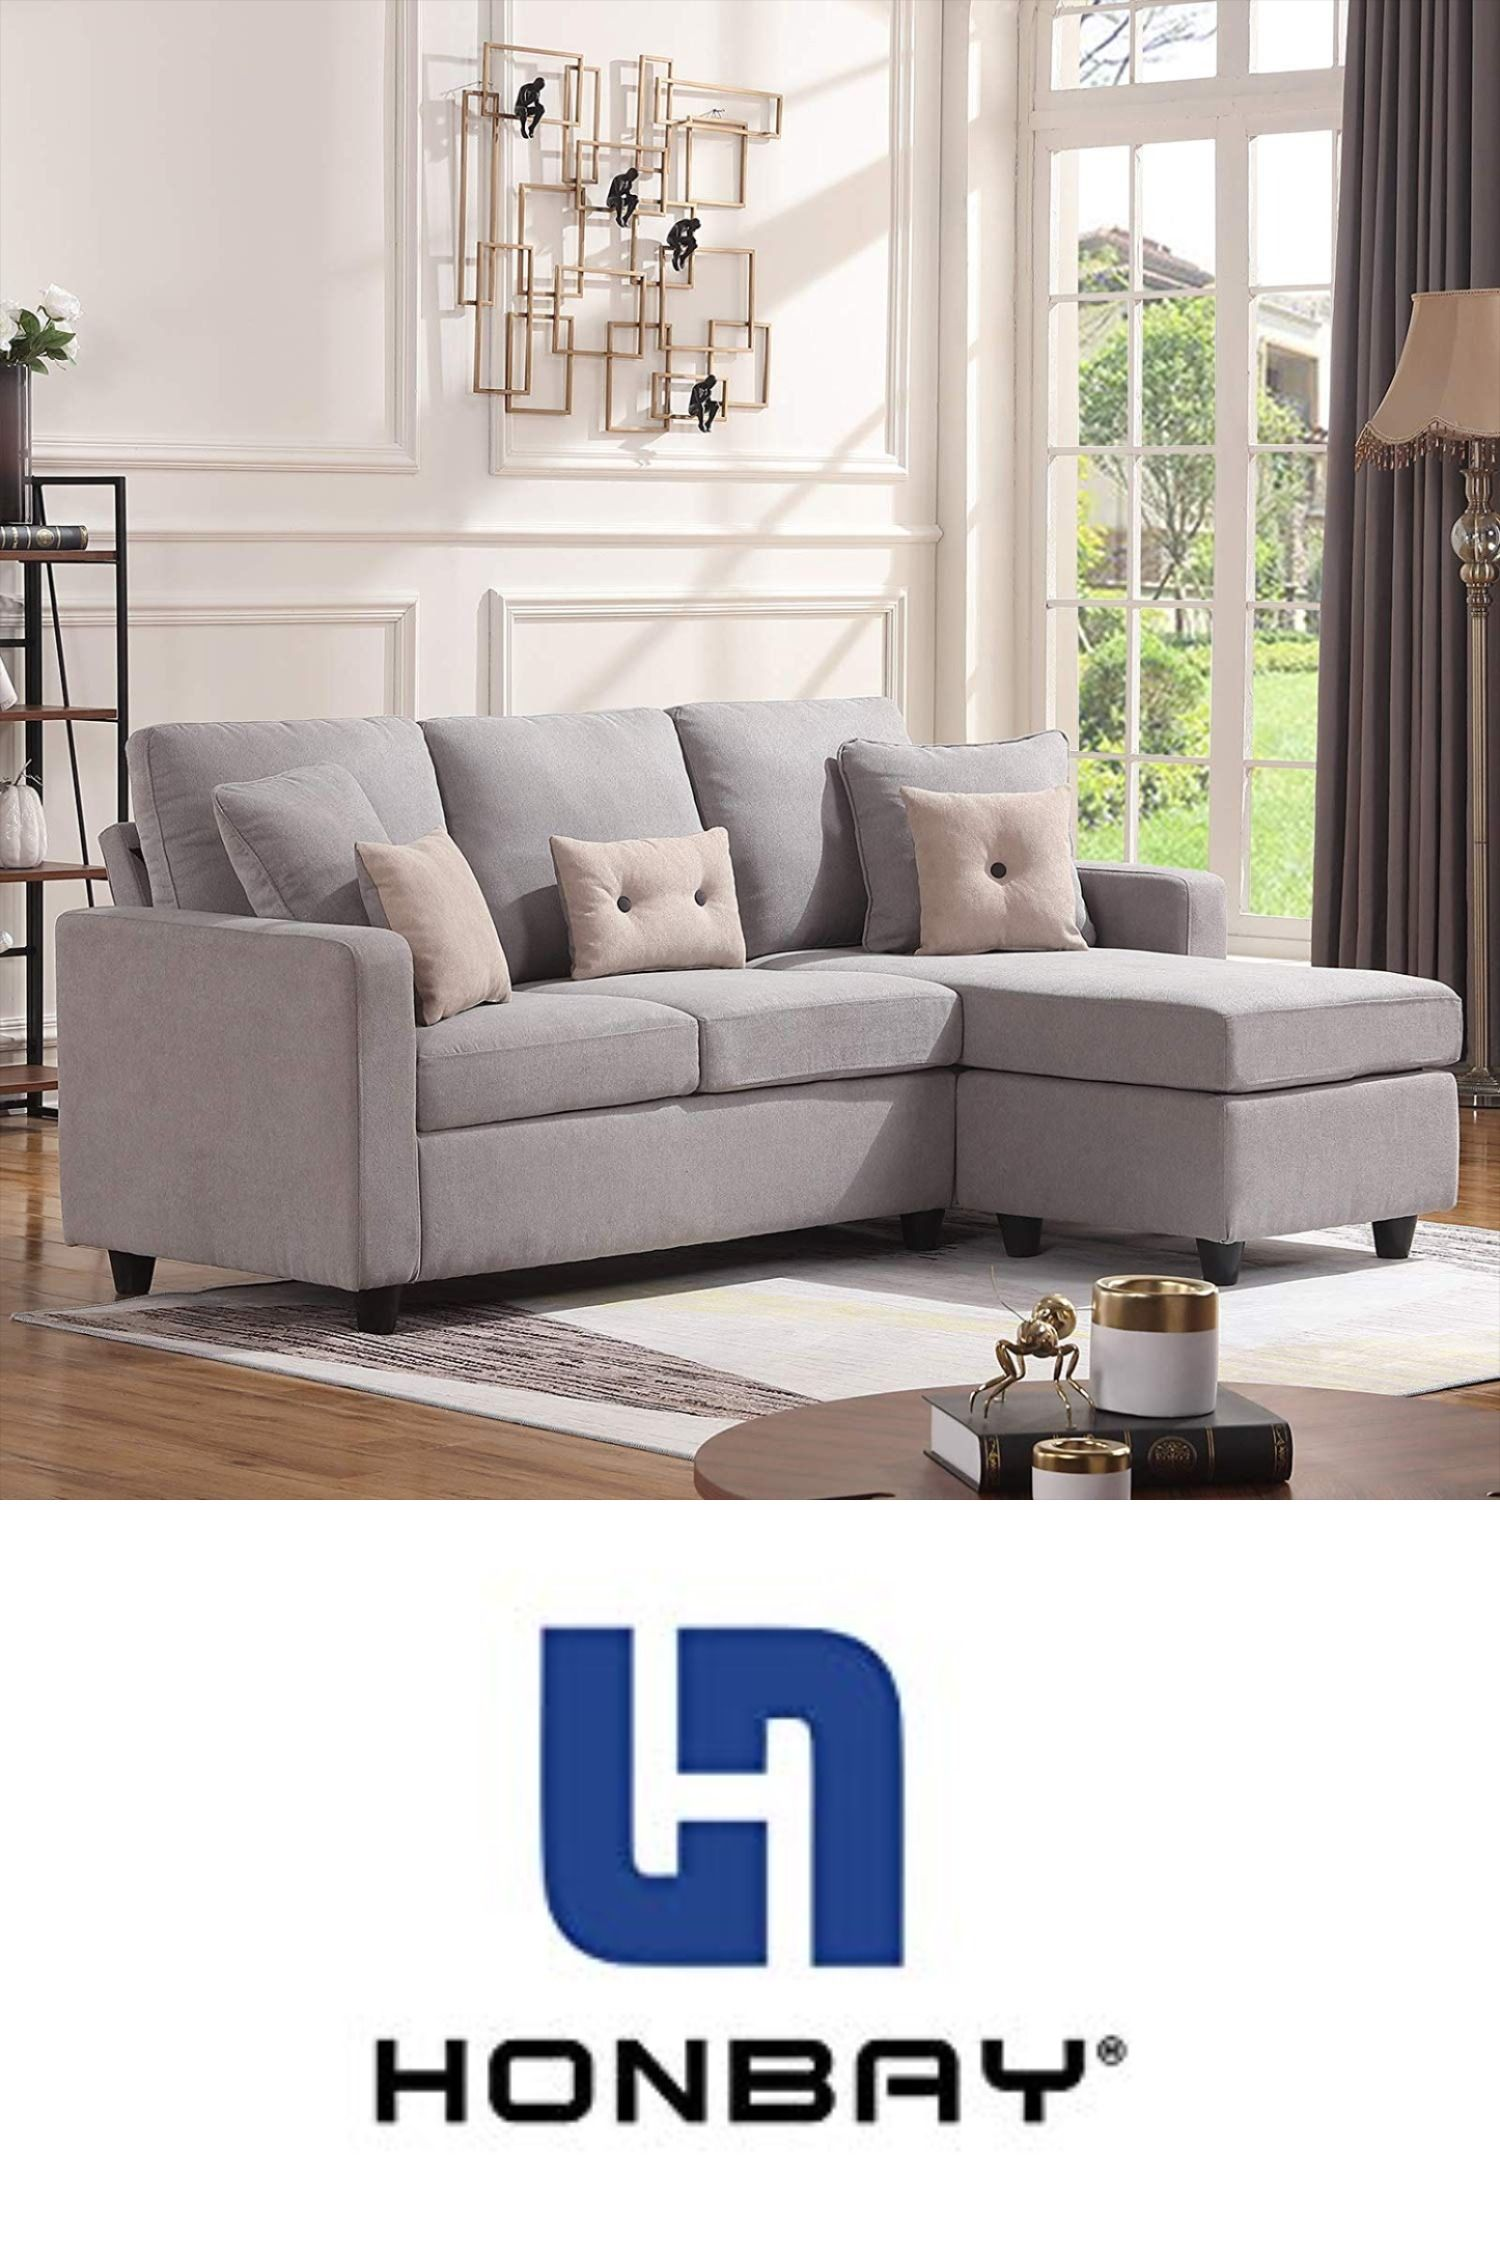 Honbay Convertible Sectional Sofa Couch In 2020 Sectional Sofa Couch Sectional Sofa L Shaped Couch